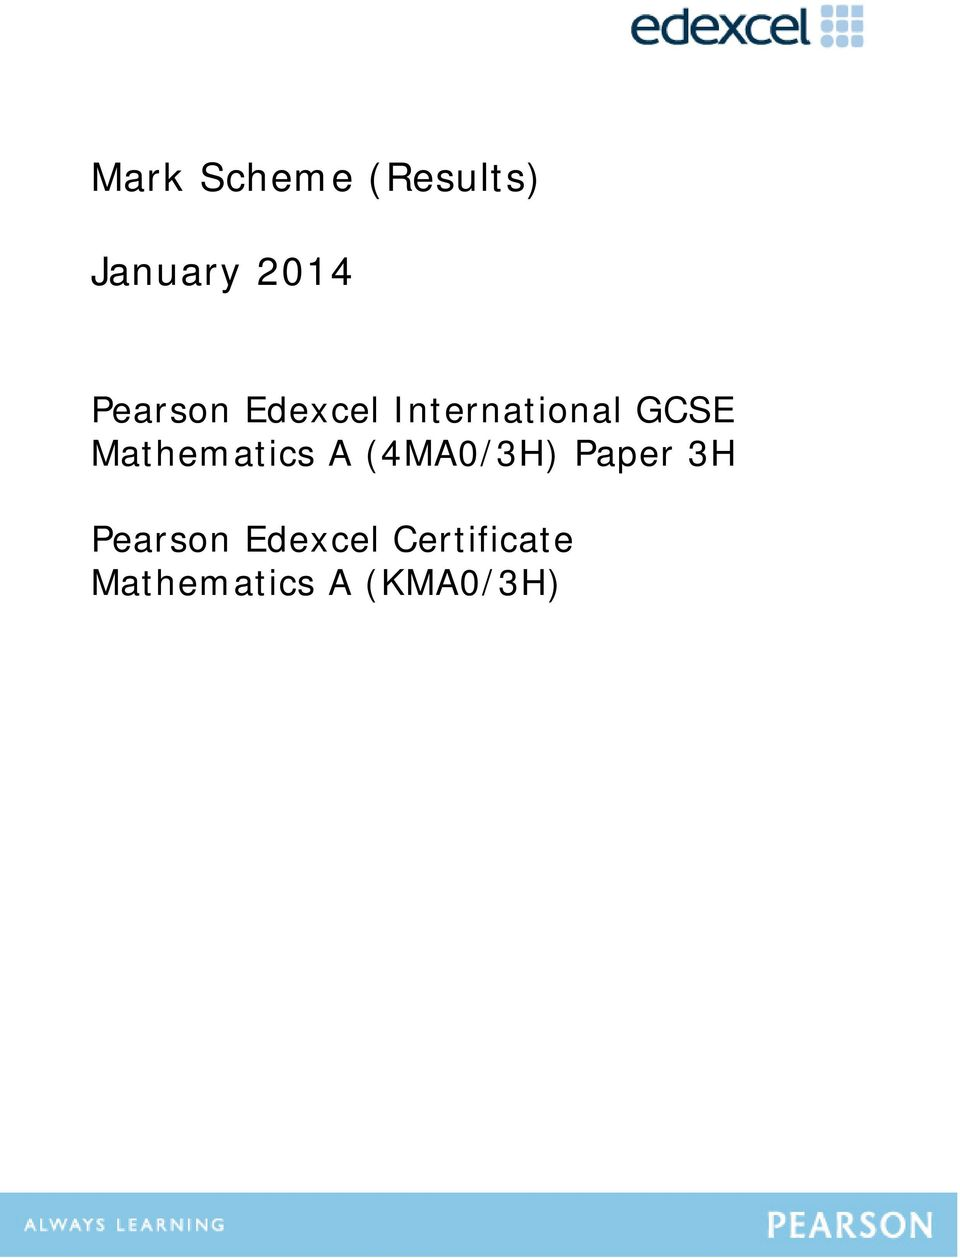 edexcel gcse mathematics b past papers On this page you will find all available past edexcel linear mathematics a gcse papers, mark schemes, written solutions and video solutions for the qualification that was sat for the final time (apart from the students taking resits) in june 2016 teachers and students studying for the current gcse.